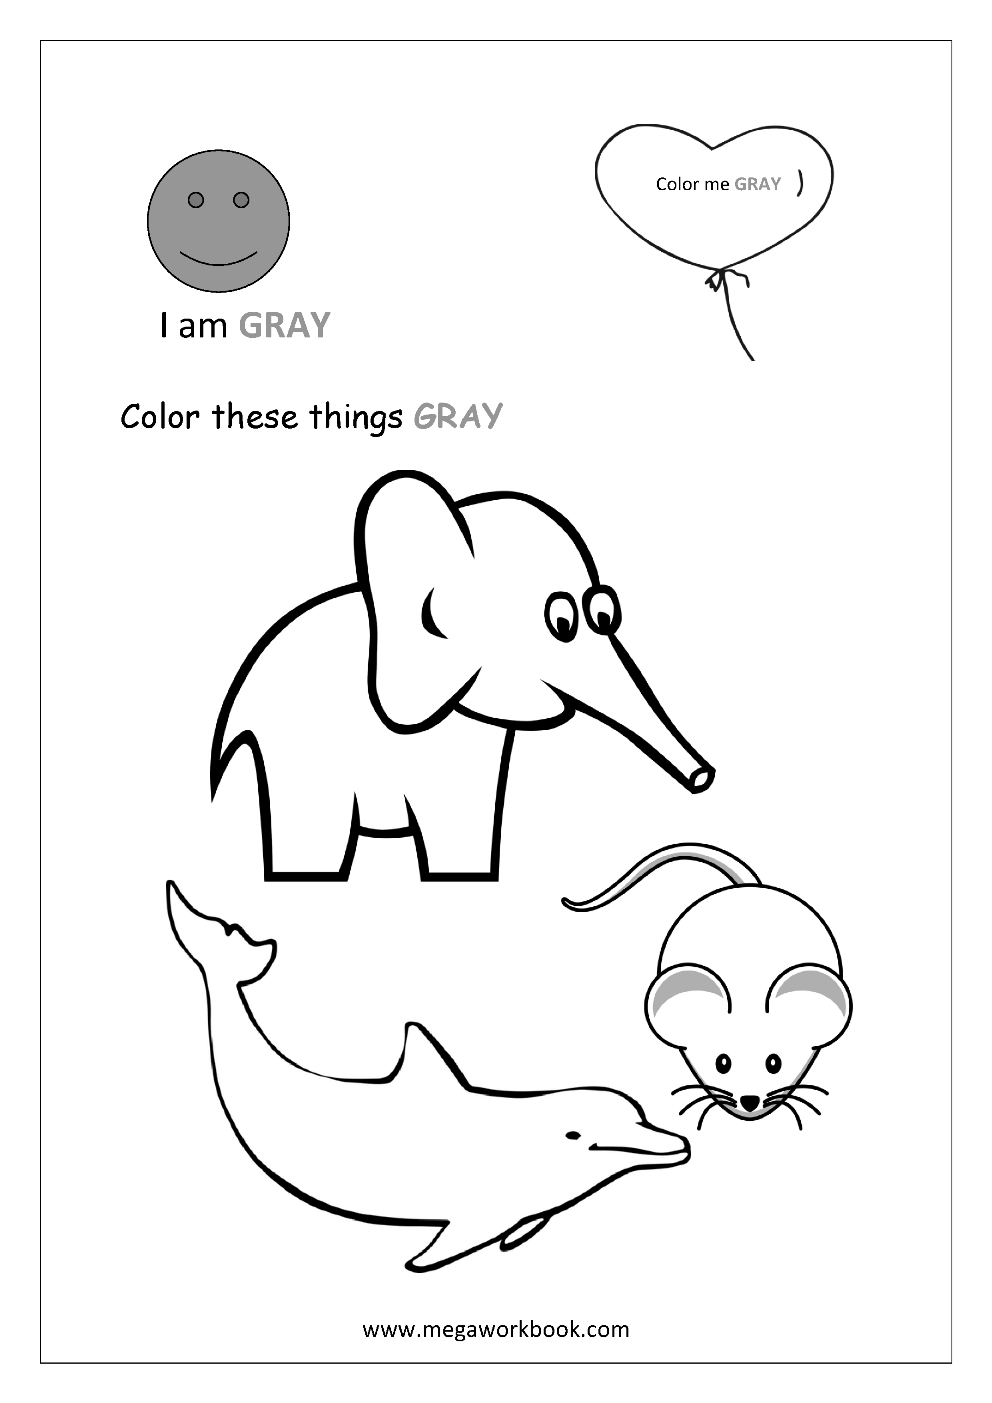 Learn Colors Red Coloring Pages Blue Coloring Pages Yellow Coloring Pages Green Colori Orange Pink Color Learning Colors Color Worksheets For Preschool [ 1403 x 992 Pixel ]